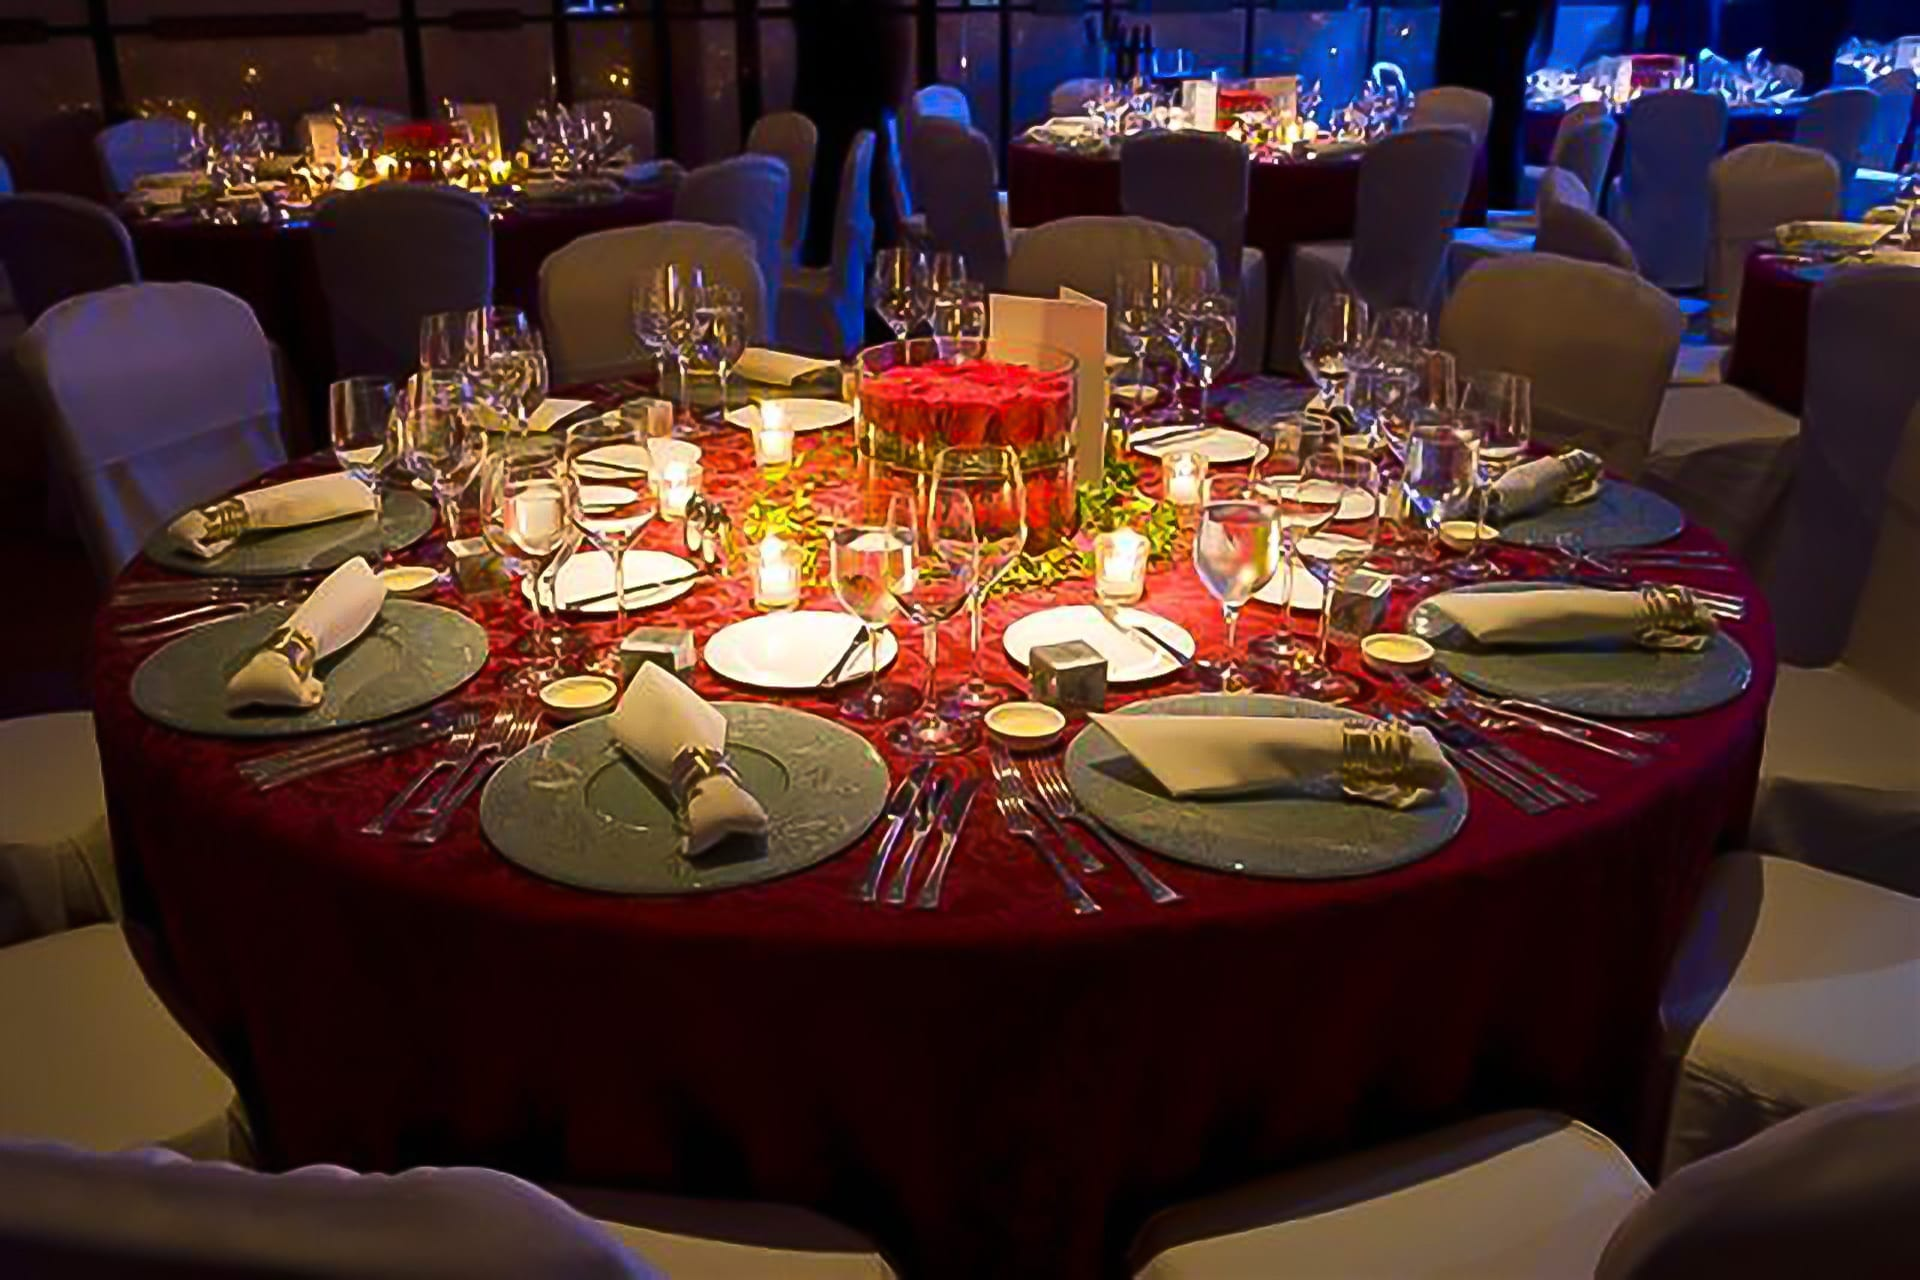 Kim Chan Events|Gala Dinner featuring red rose table centrepieces and candles